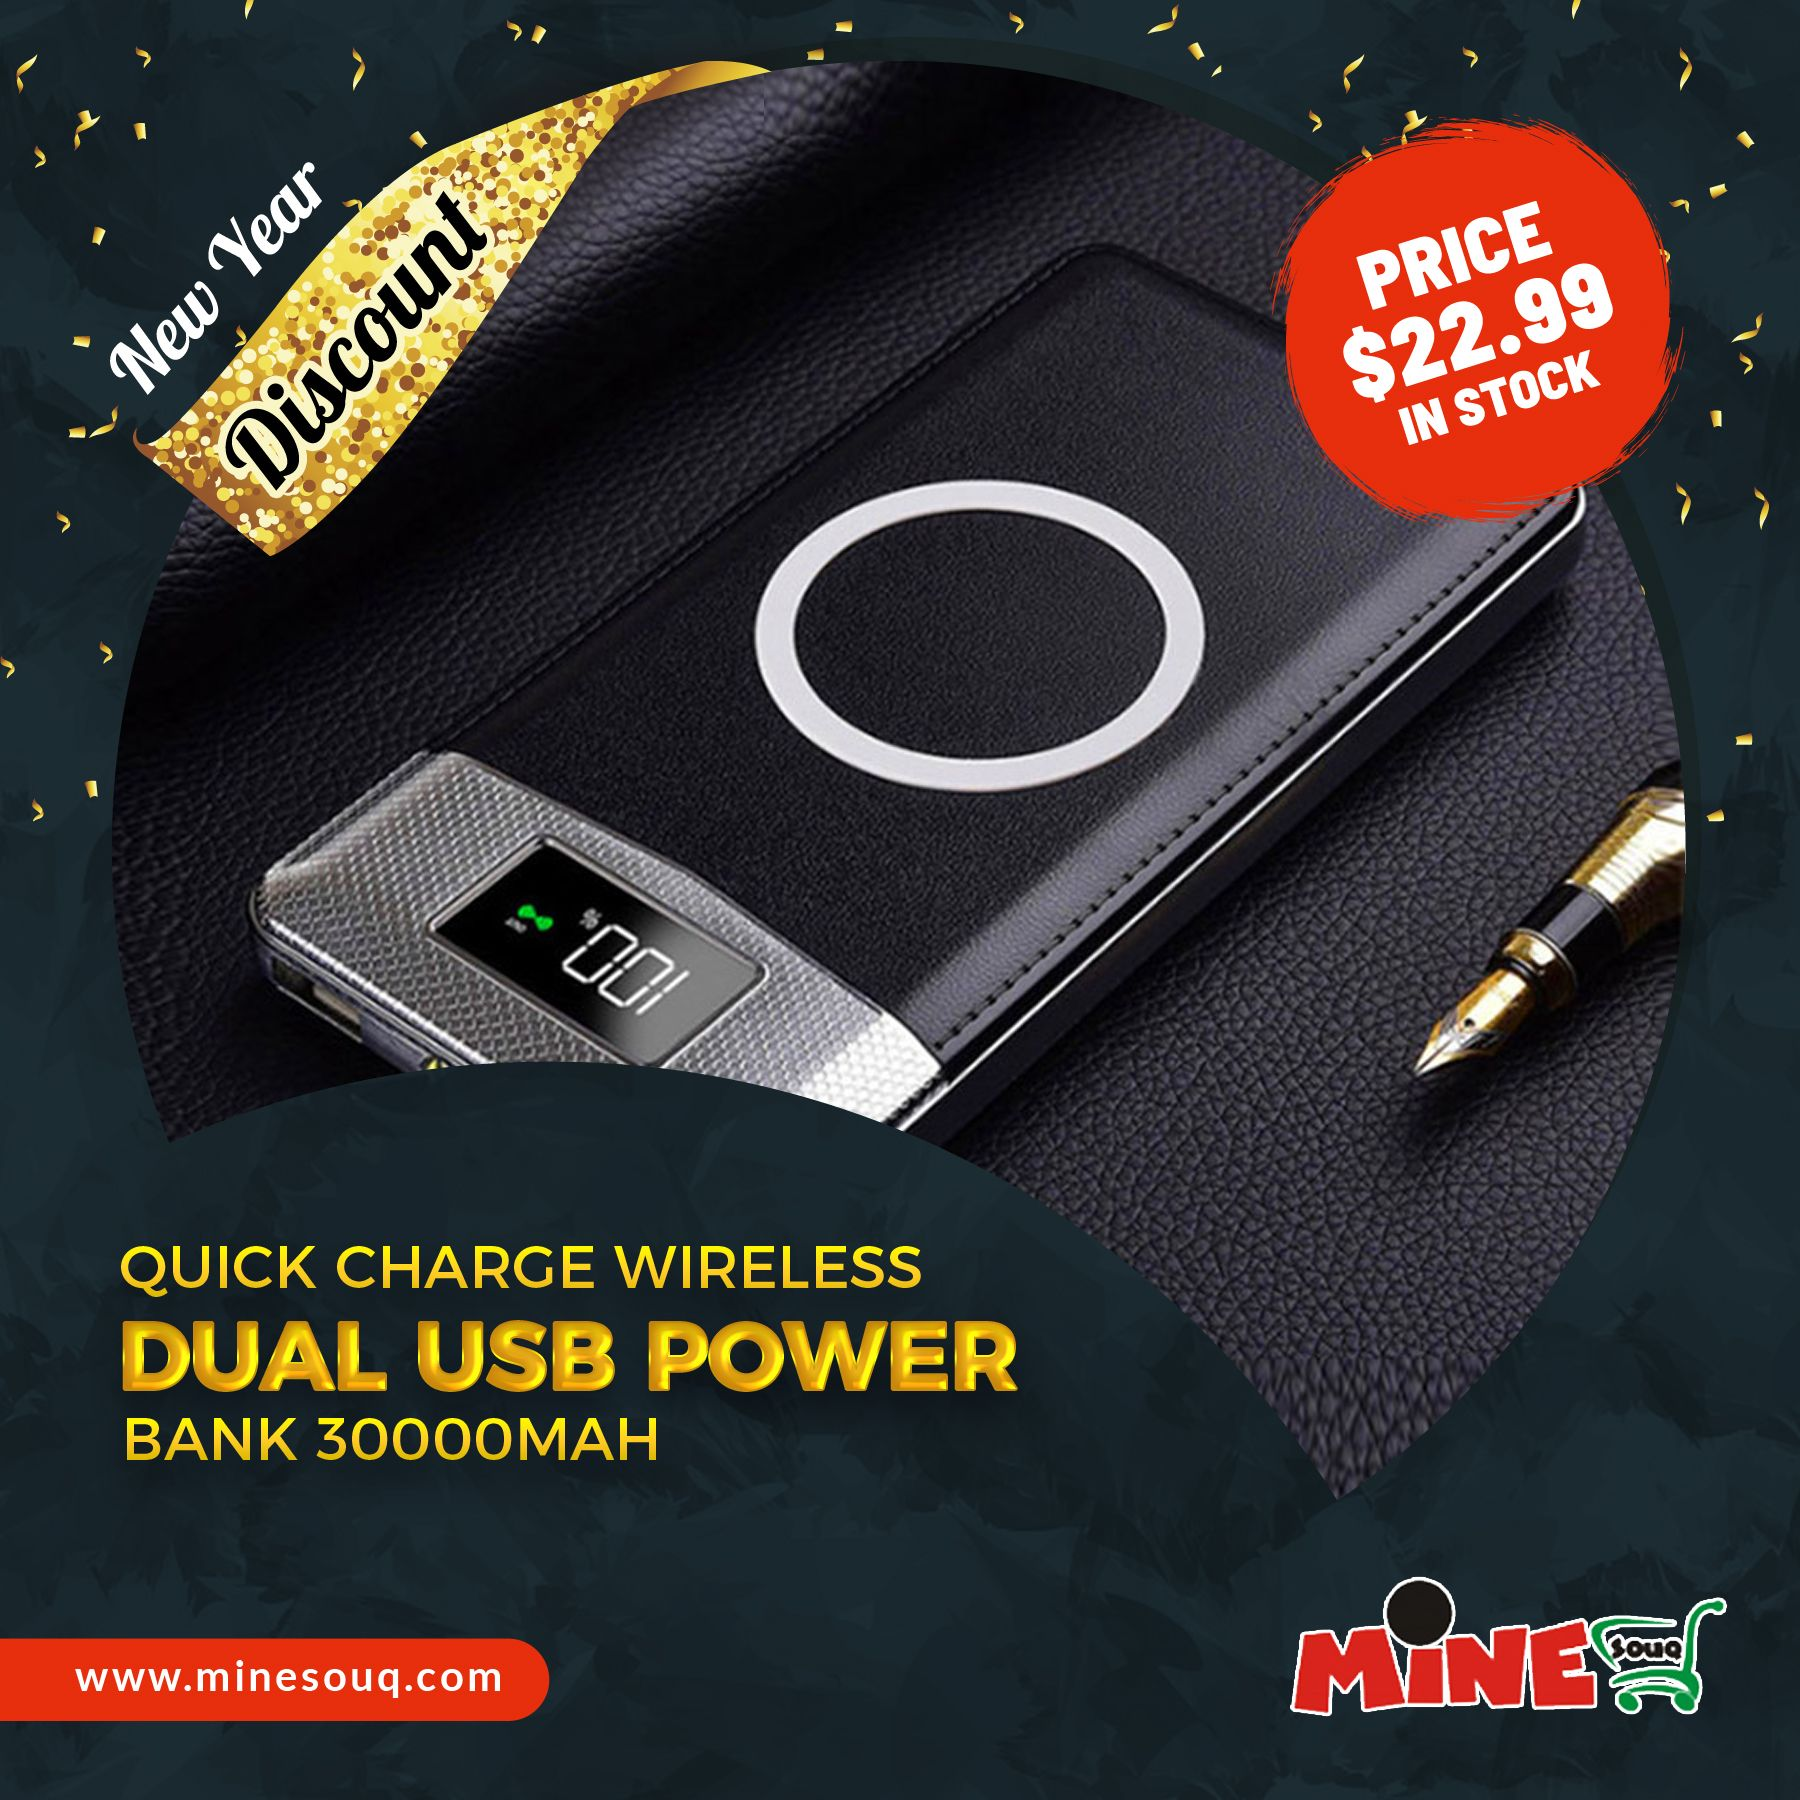 Quick Charge Wireless Dual USB Power Bank 30000mAh in 2019